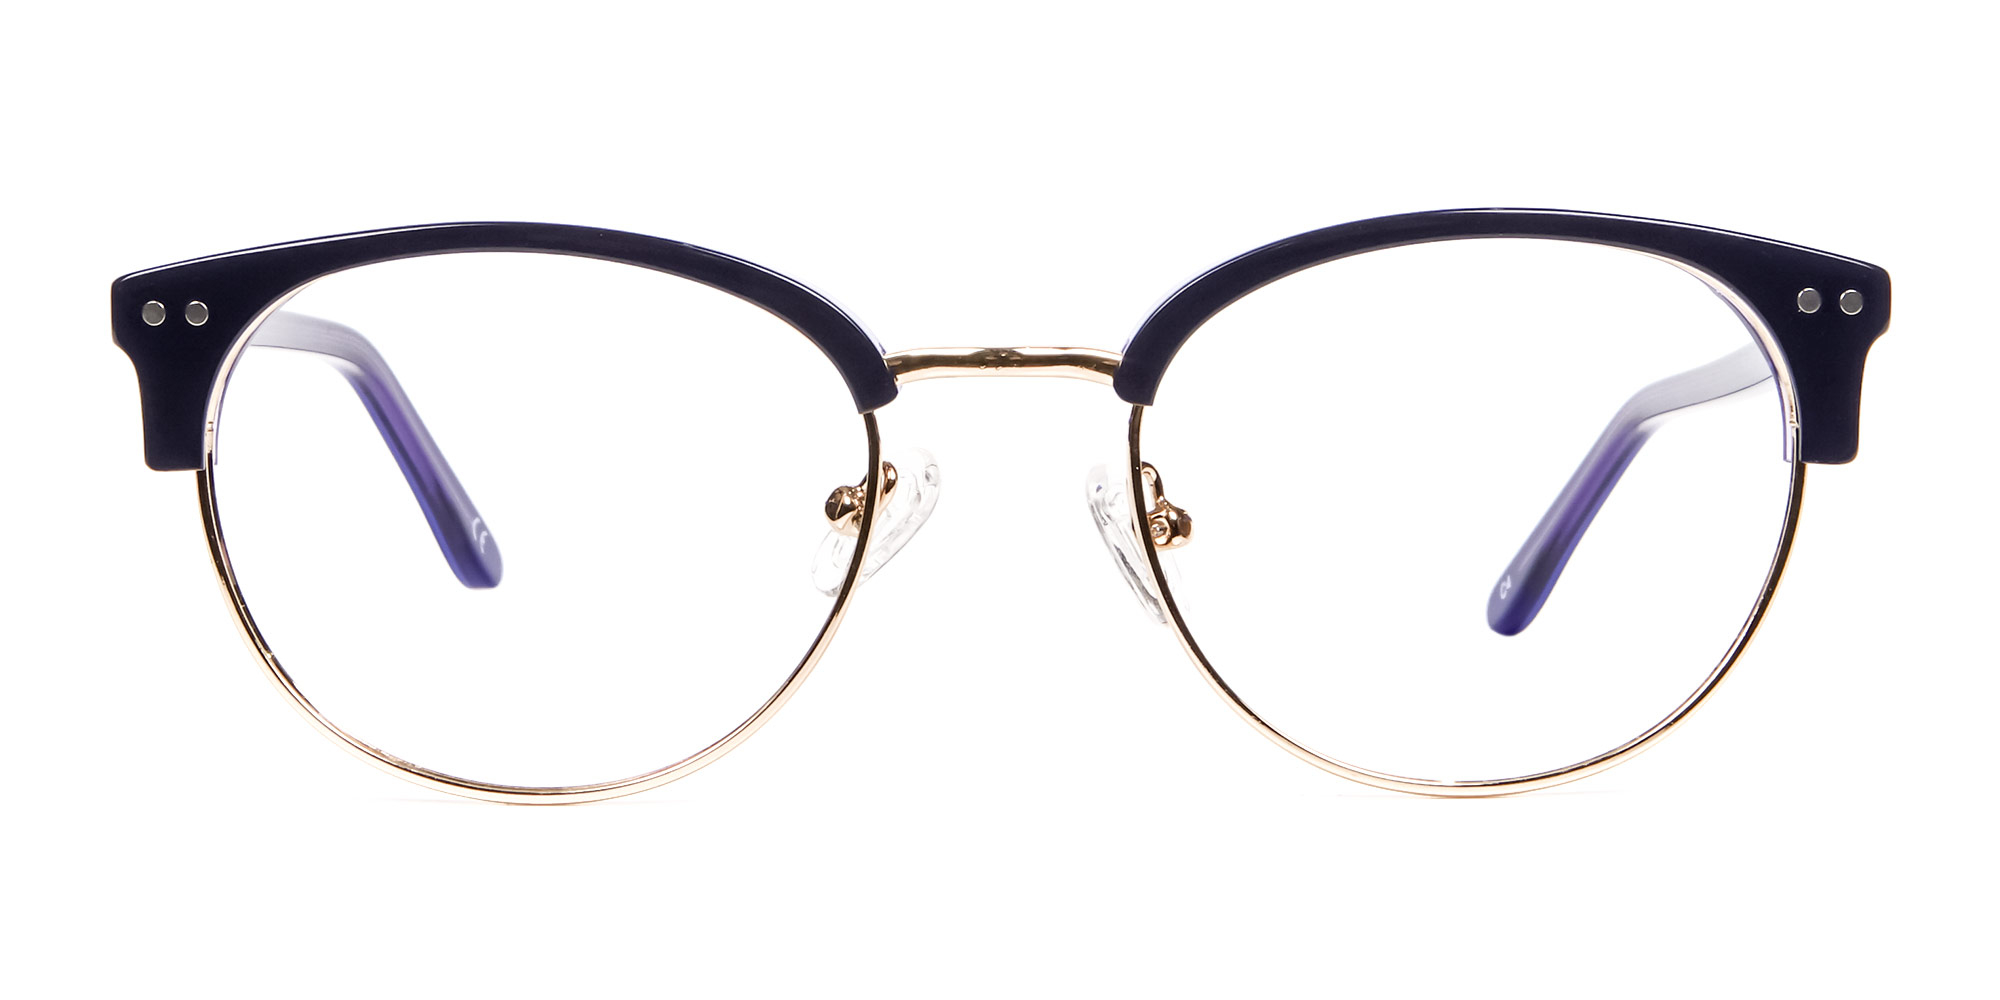 Violet Black Browline Eyeglasses for diamond face shape